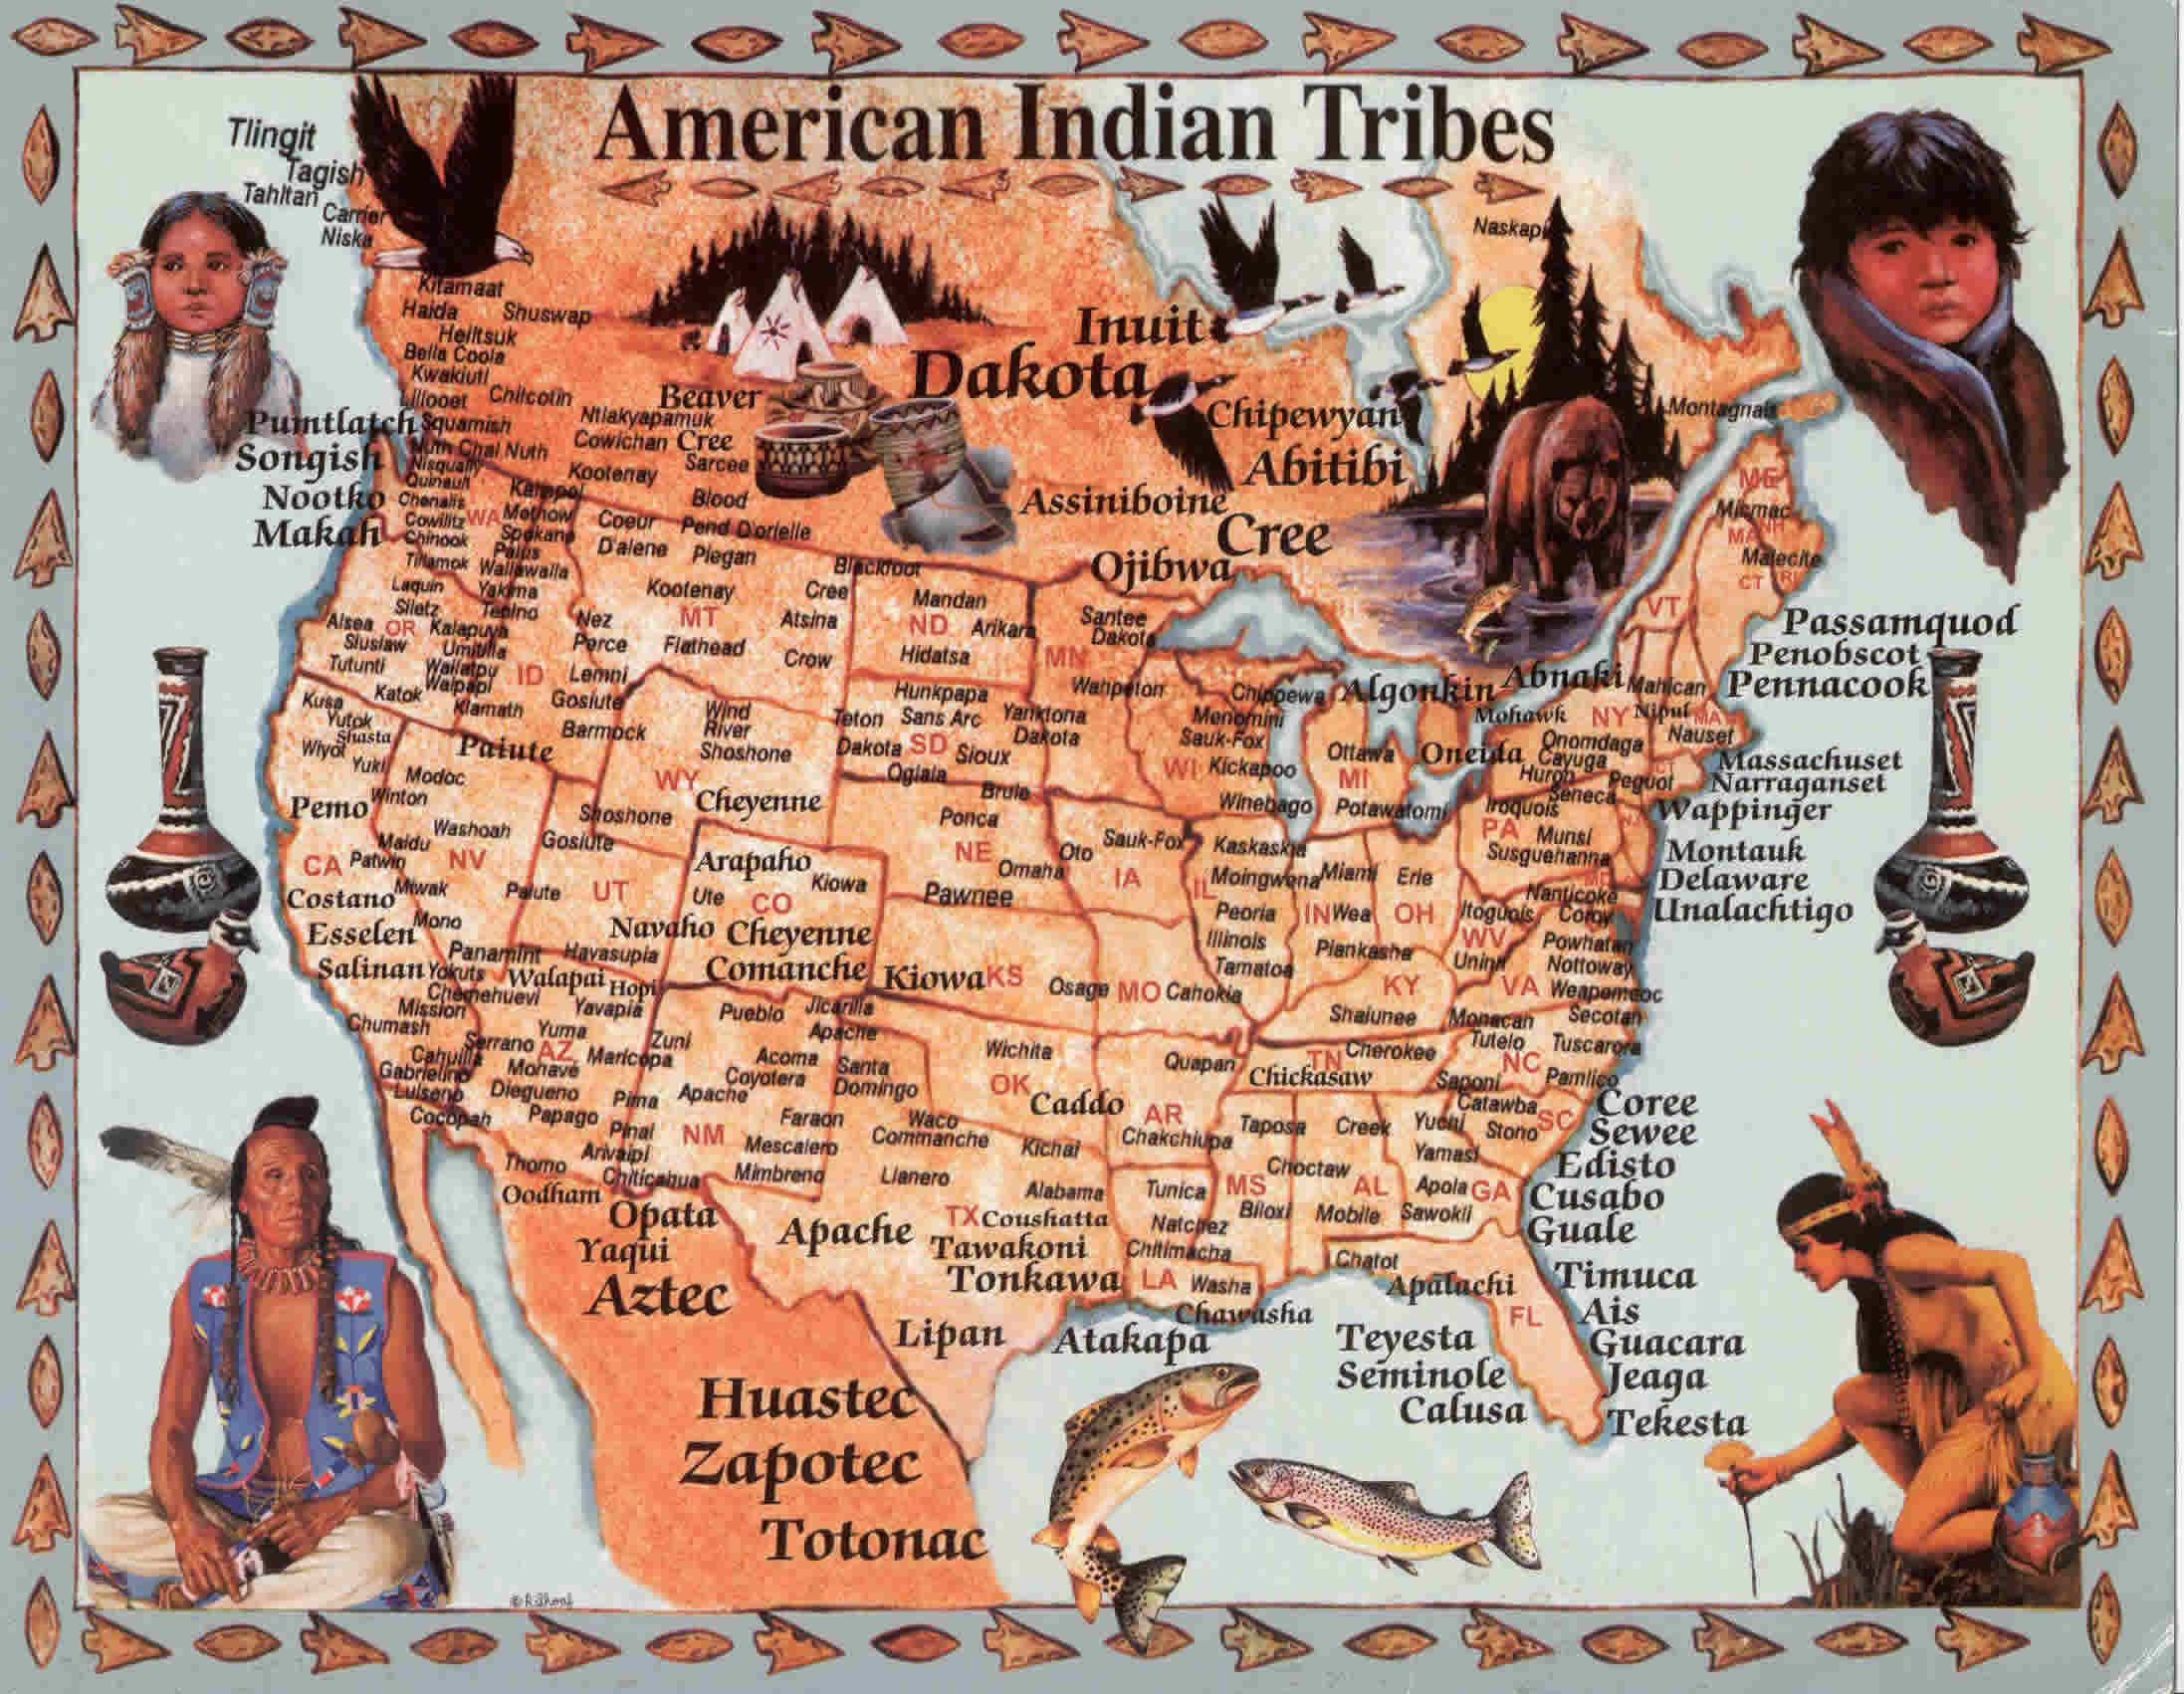 a history of native indian in united states of america Recommended books about united states indians atlas of the north american indian: tribal maps showing the pre-columbian, colonial, and current locations of native.